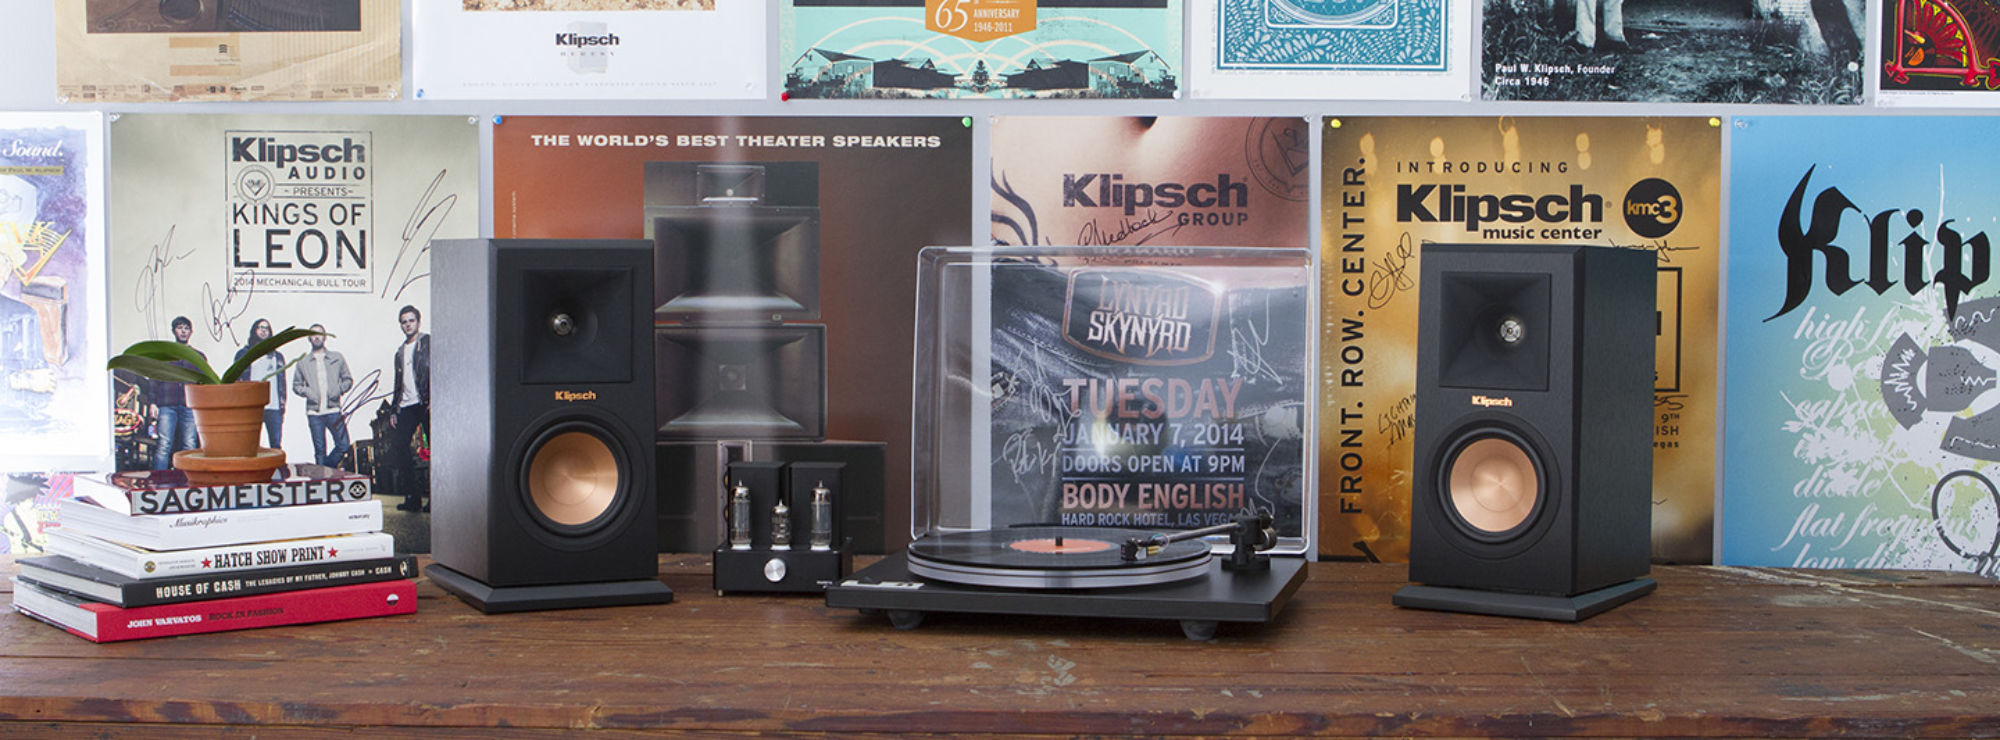 U-Turn turnable with two R-15PM powered speakers in front of Klipsch plaques